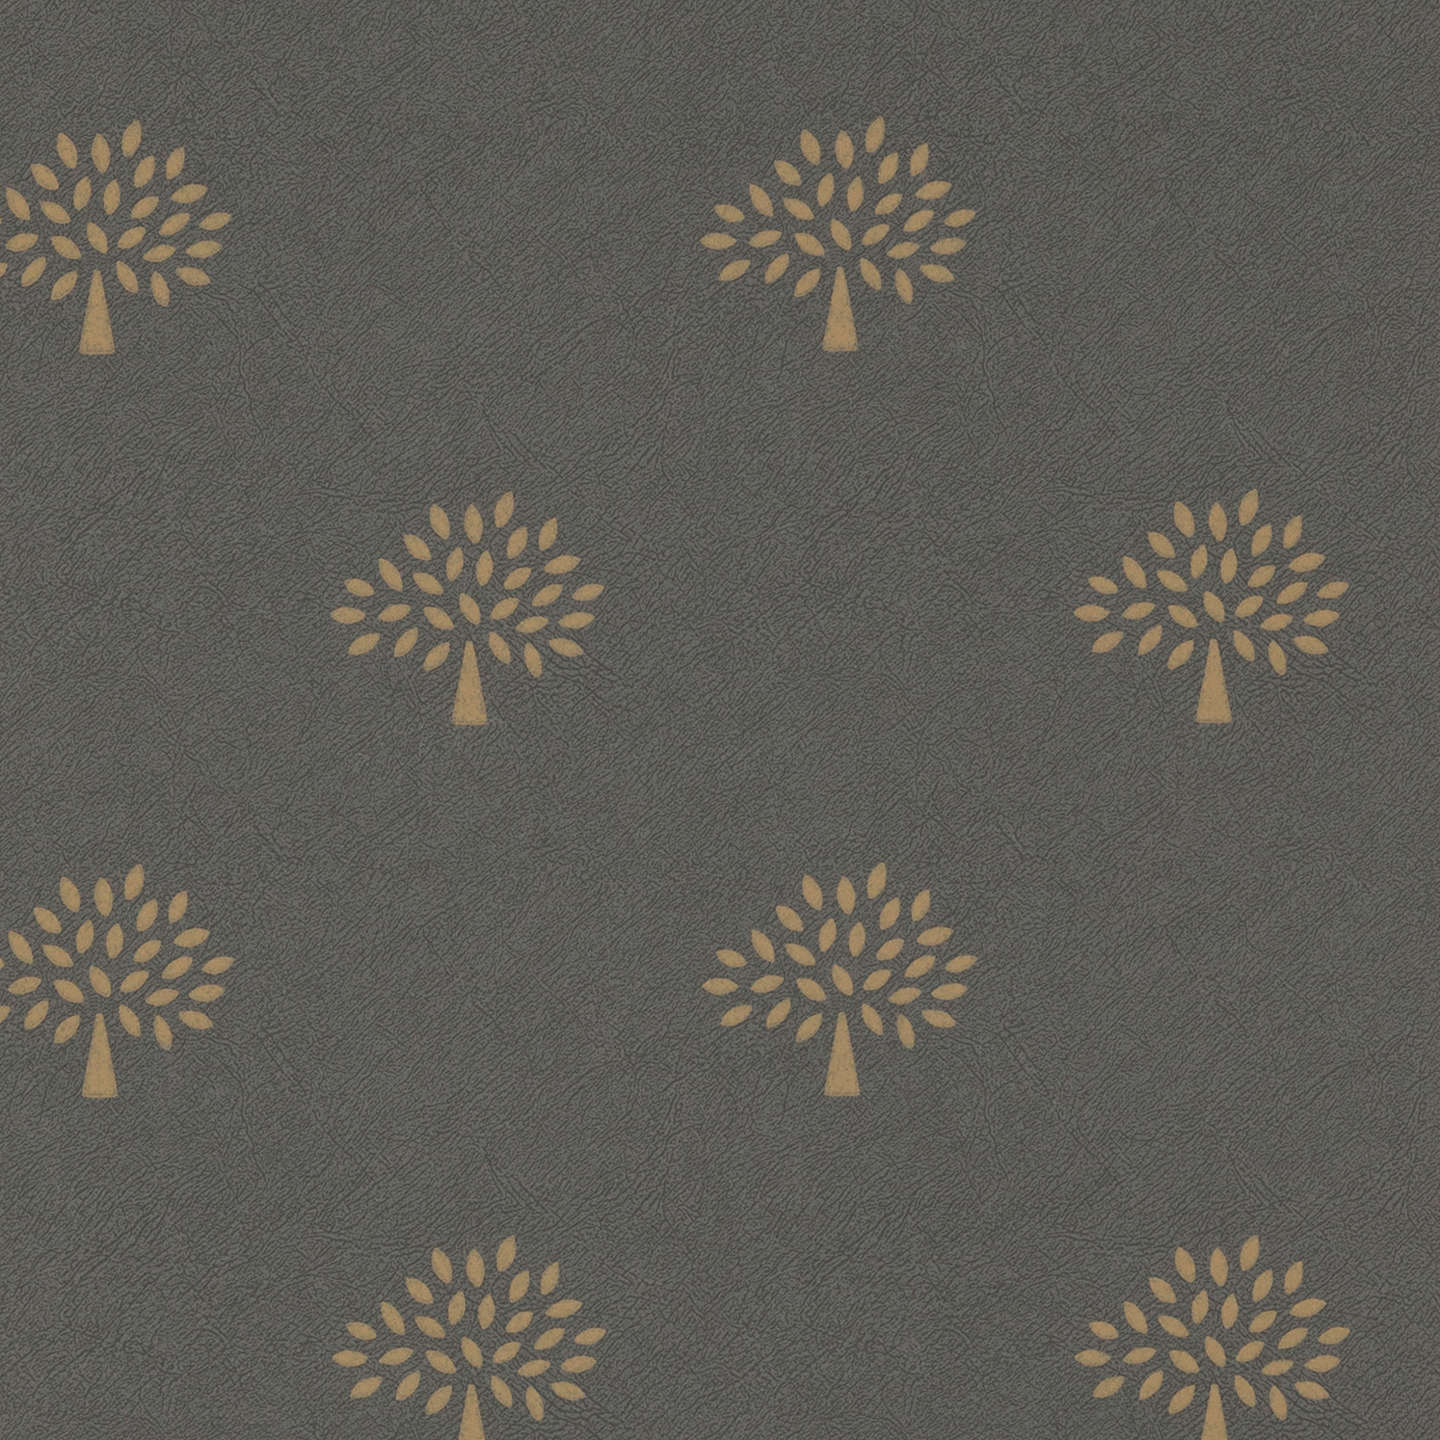 Mulberry home grand mulberry tree wallpaper at john lewis for Mullberry home